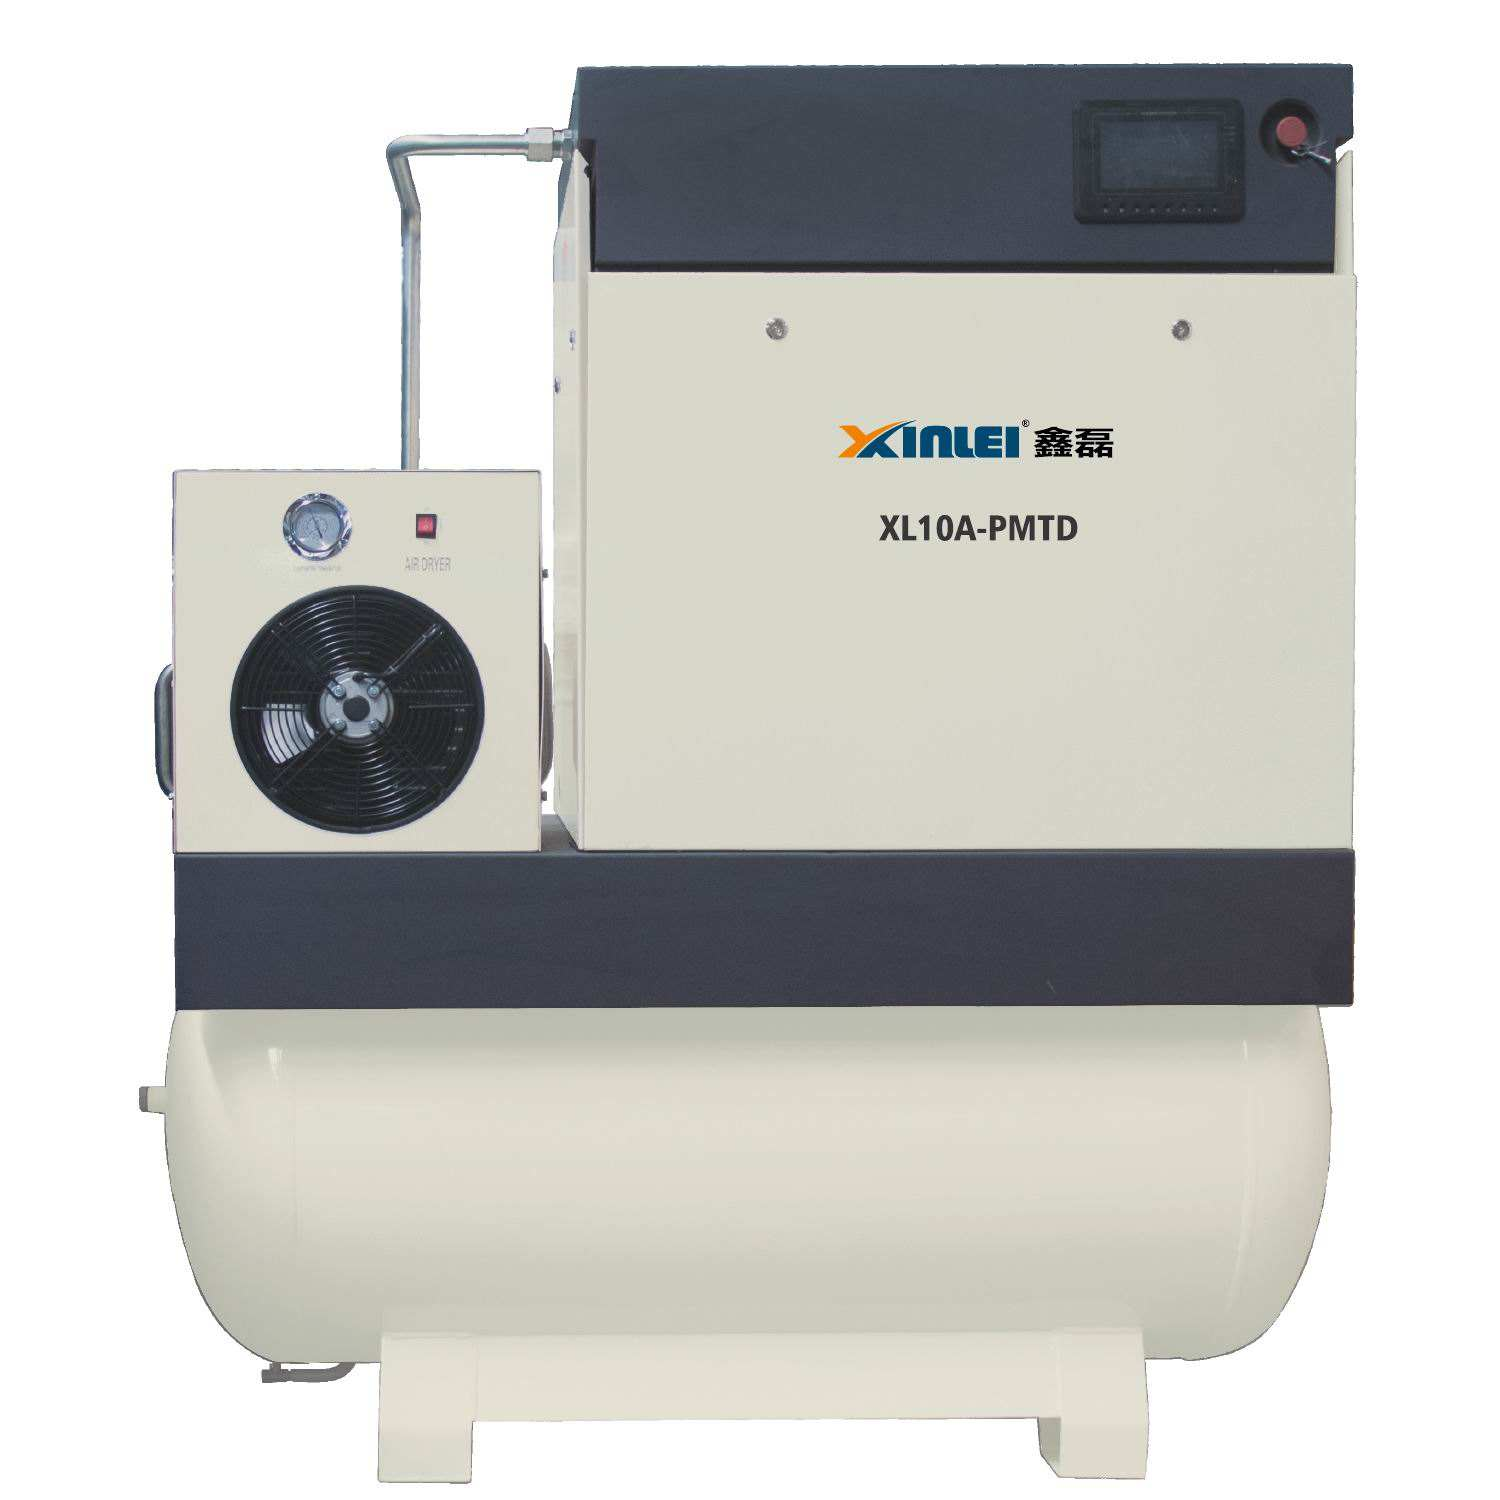 8bar 10bar 20HP 15KW XLPMTD20A-t815 screw air compressor with 500L air tank with air dryer with frequency inverter